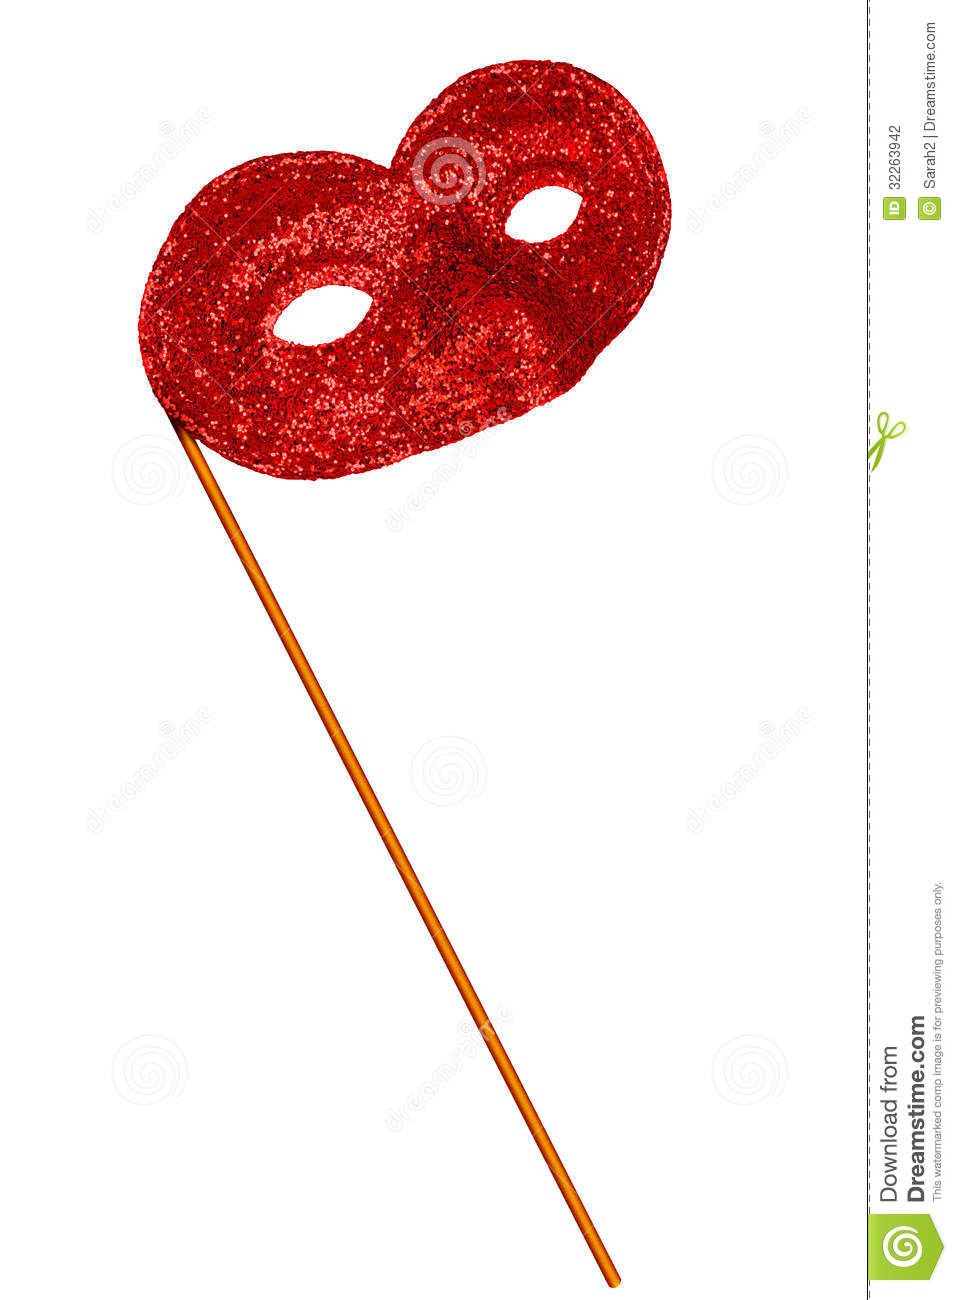 Simple Red Glitter Fancy Dress Or Carnival Mask - Isolated Stock ...